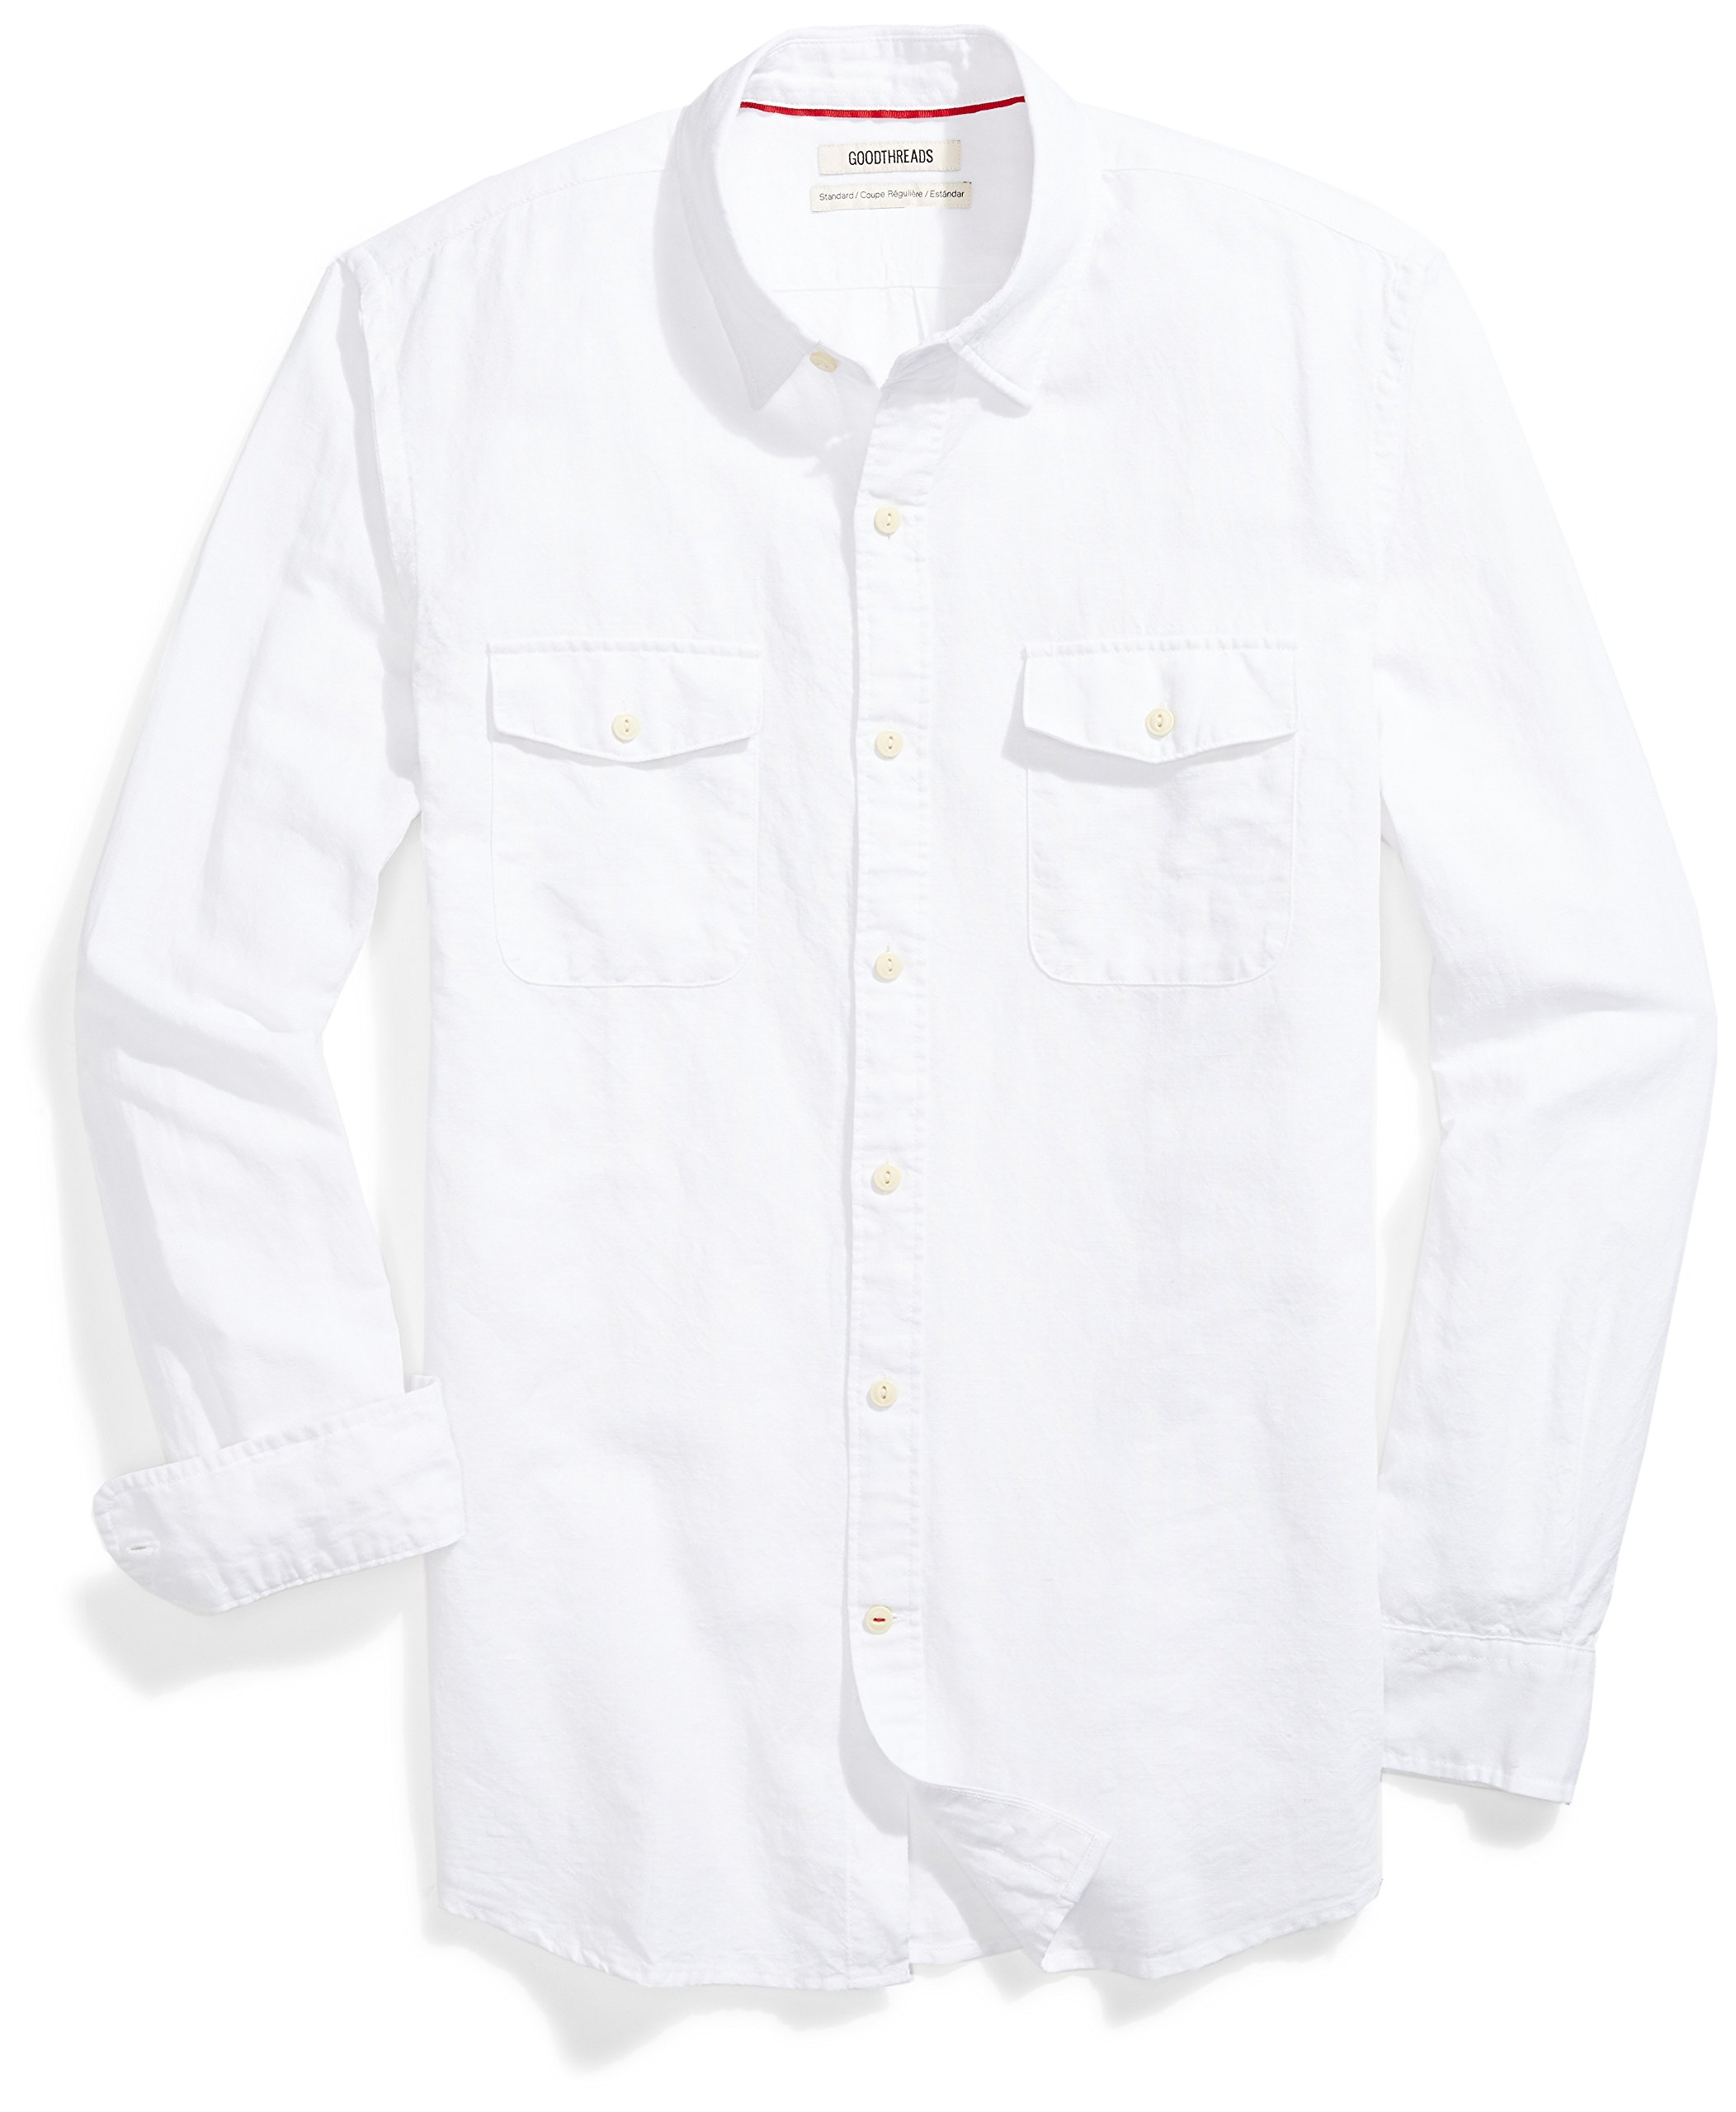 Goodthreads Men's Standard-Fit Long-Sleeve Linen and Cotton Blend Shirt, White, Medium